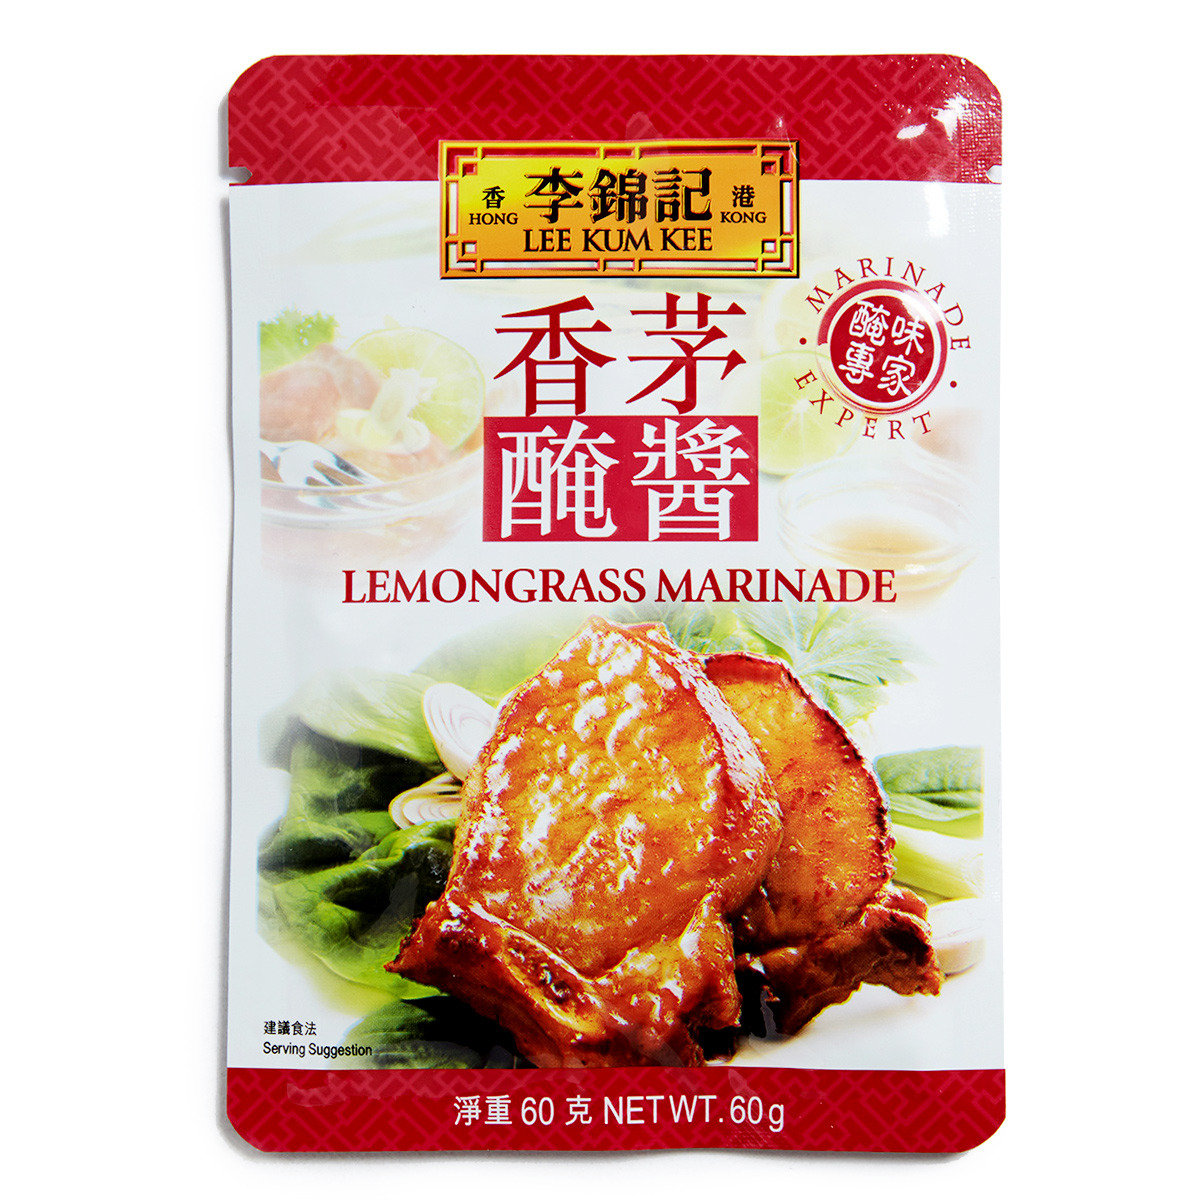 Lemongrass Marinade